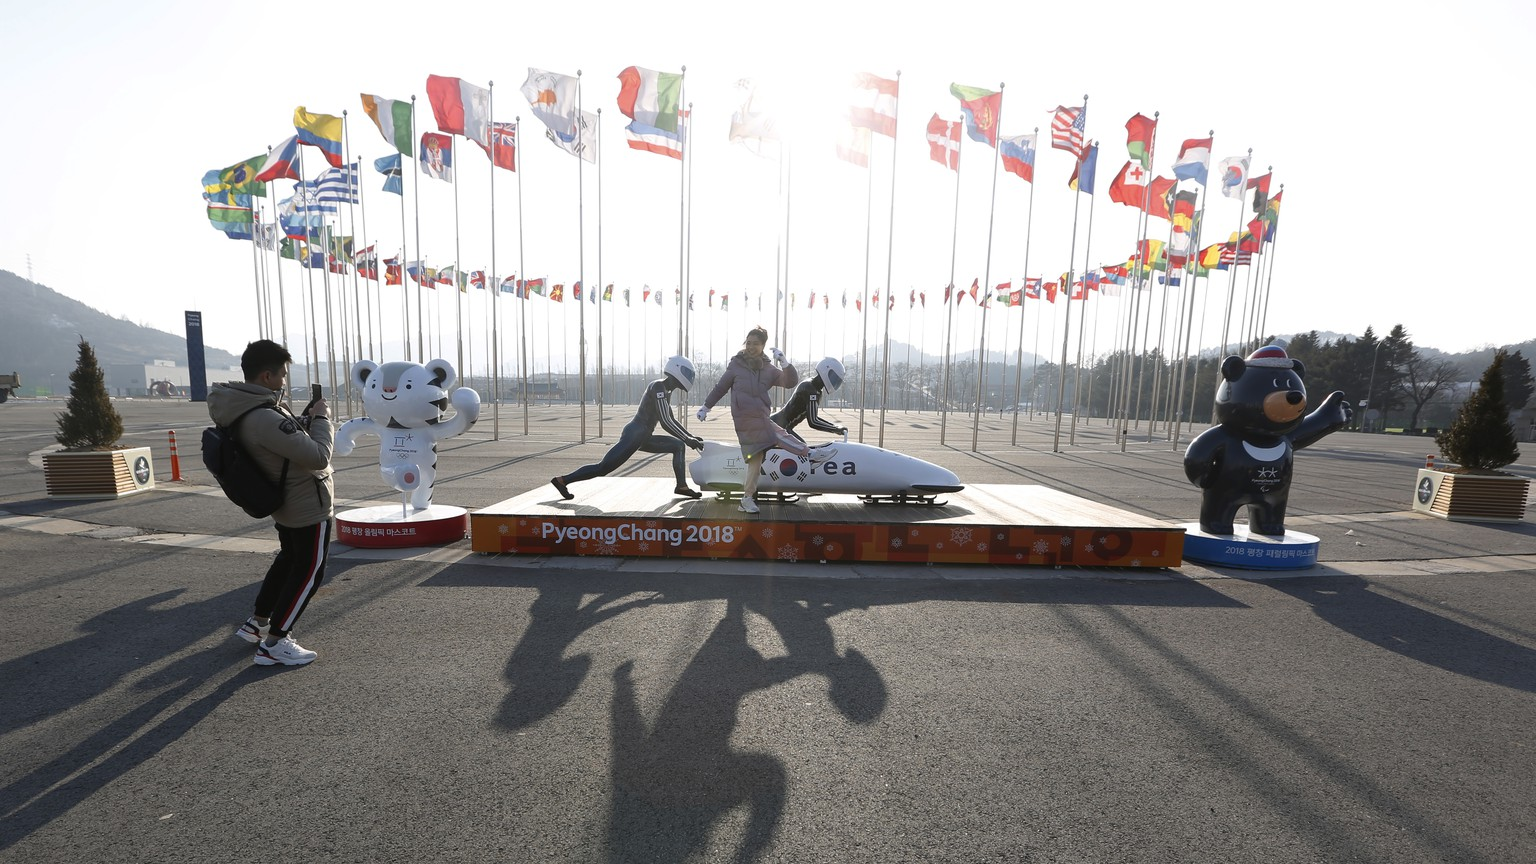 epa07315169 Tourists take picture on what was the so-called Medal Plaza near the Pyeongchang Olympic Stadium (not pictured) which hosted the opening and closing ceremonies of the PyeongChang Winter Olympic and Paralympic Games in PyeongChang, South Korea, 23 January 2019. The PyeongChang 2018 Winter Olympic Games took place from 09 to 25 February 2018.  EPA/JEON HEON-KYUN ATTENTION: This Image is part of a PHOTO SET